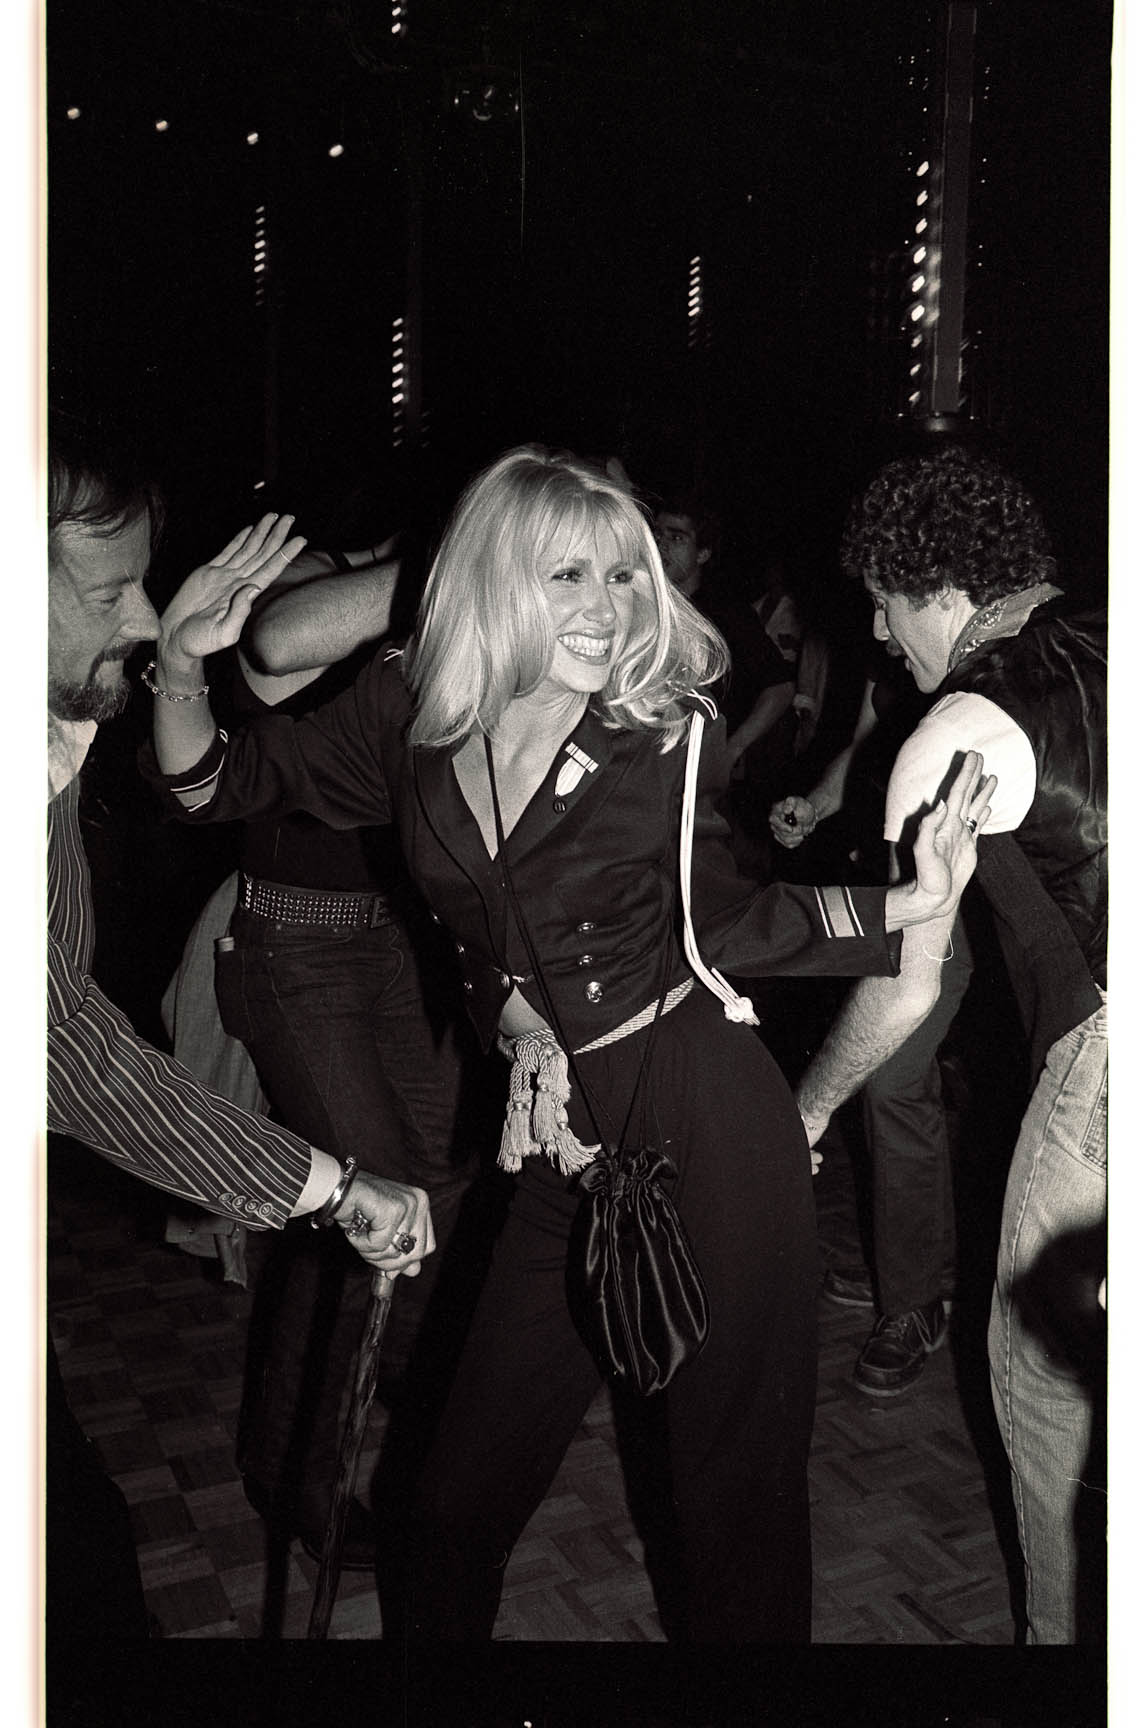 Suzanne Somers dancing at Studio 54, photographed by Gene Spatz.